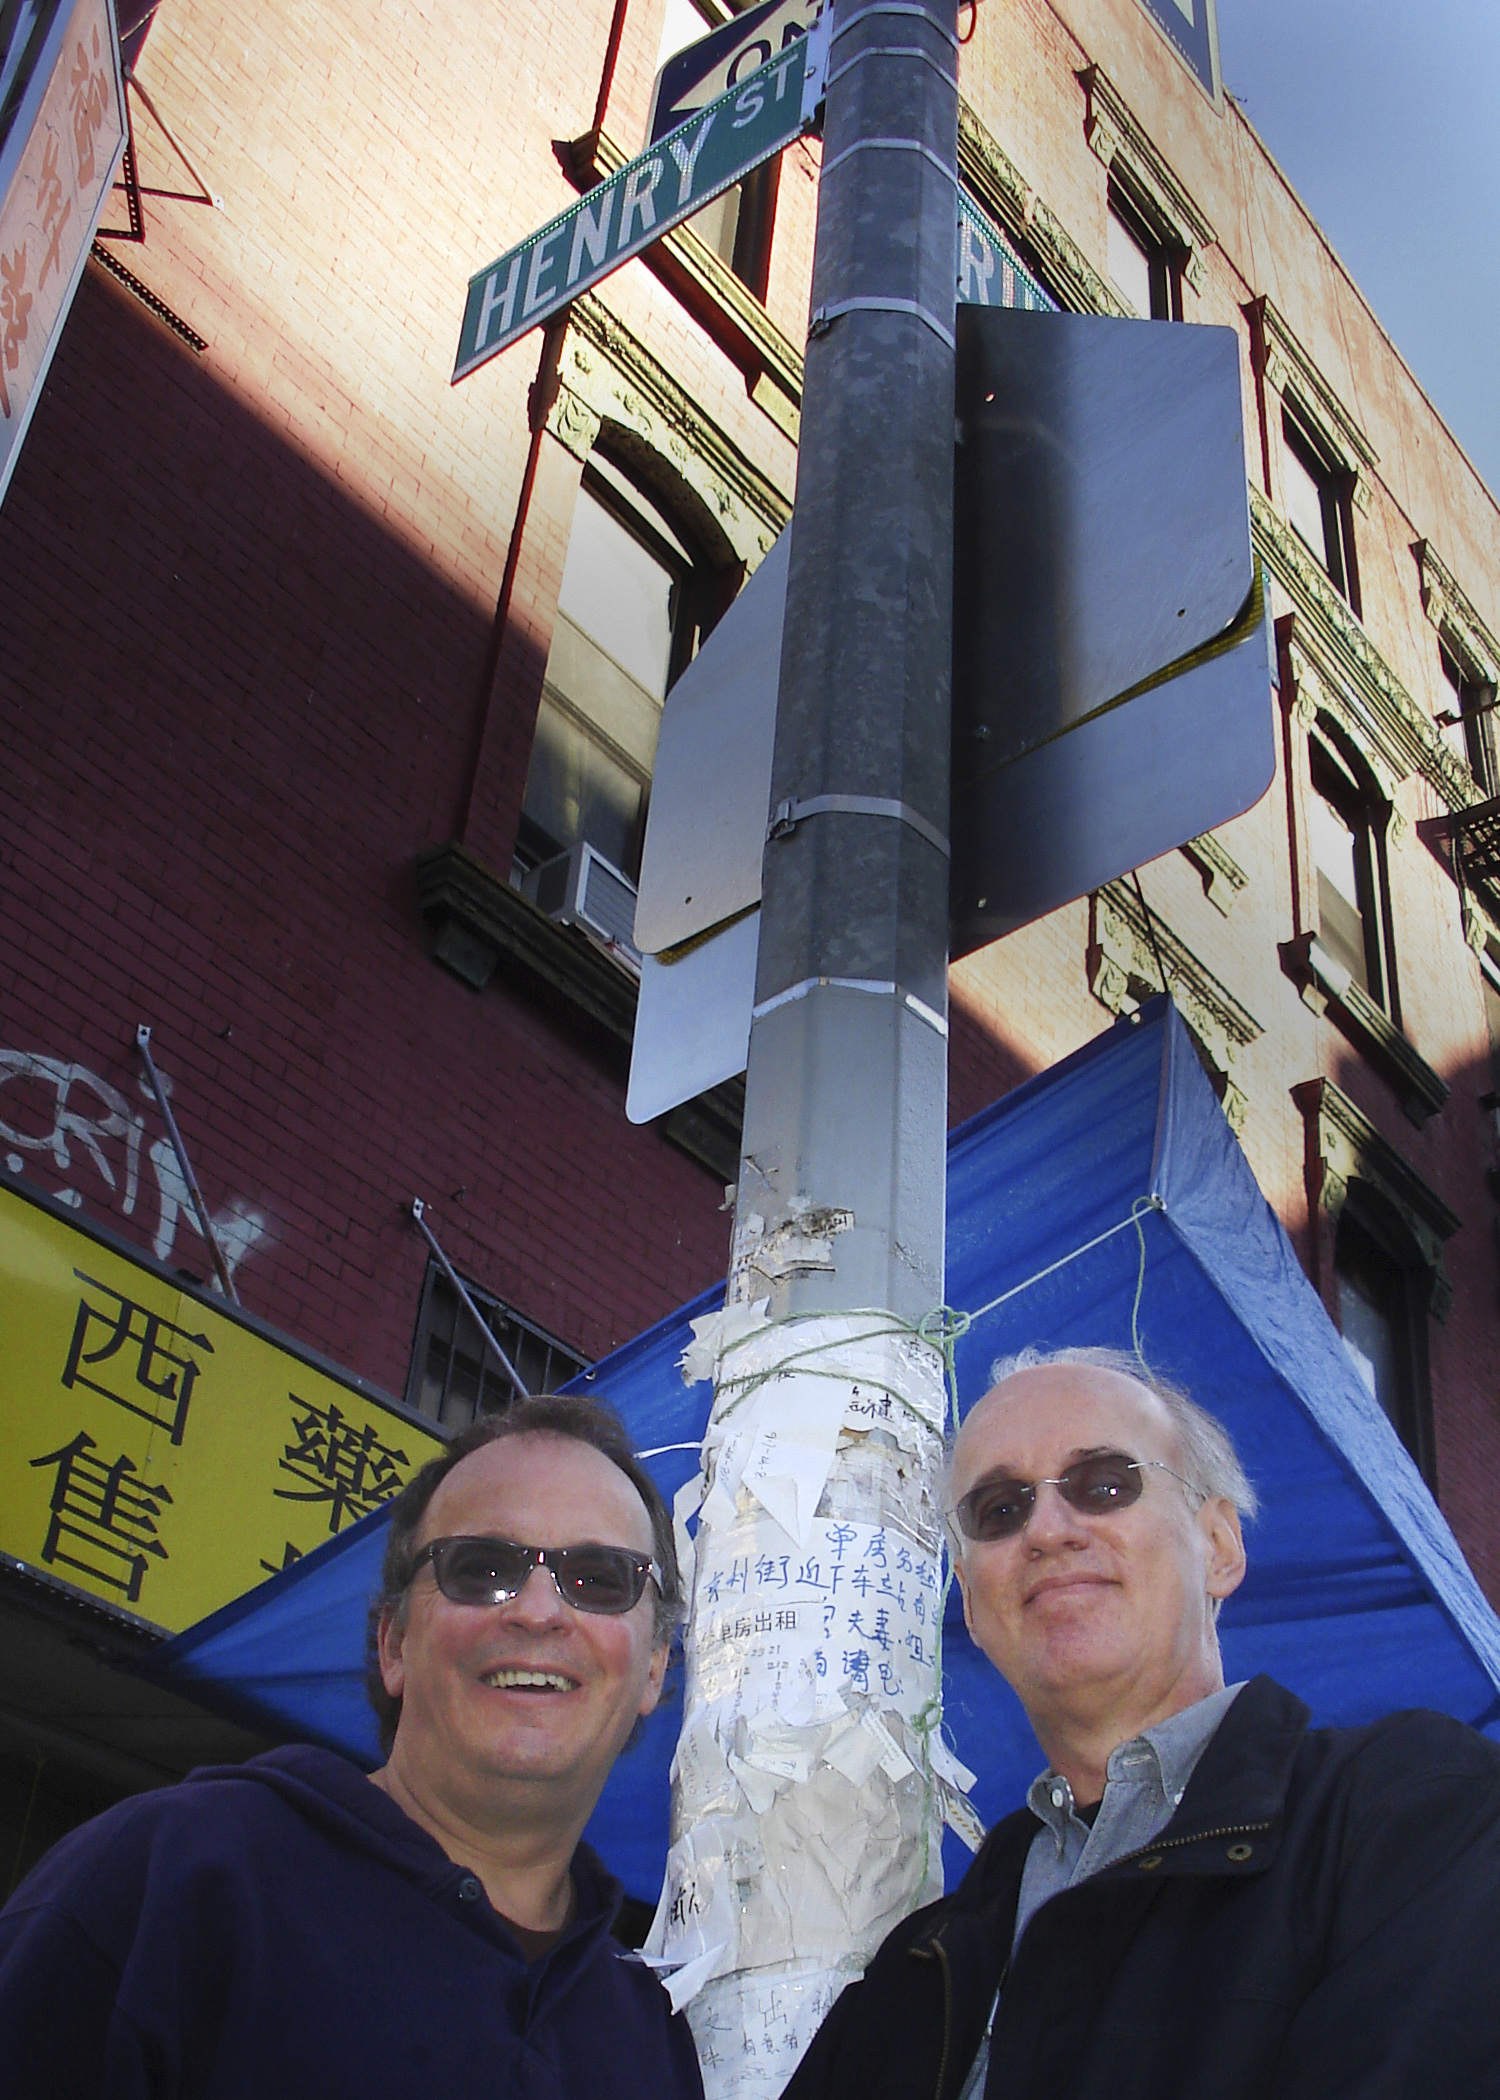 Phil Kline and Tom Steenland both wearing sunglasses and standing on opposite sides of a traffic pole on a city street corner.